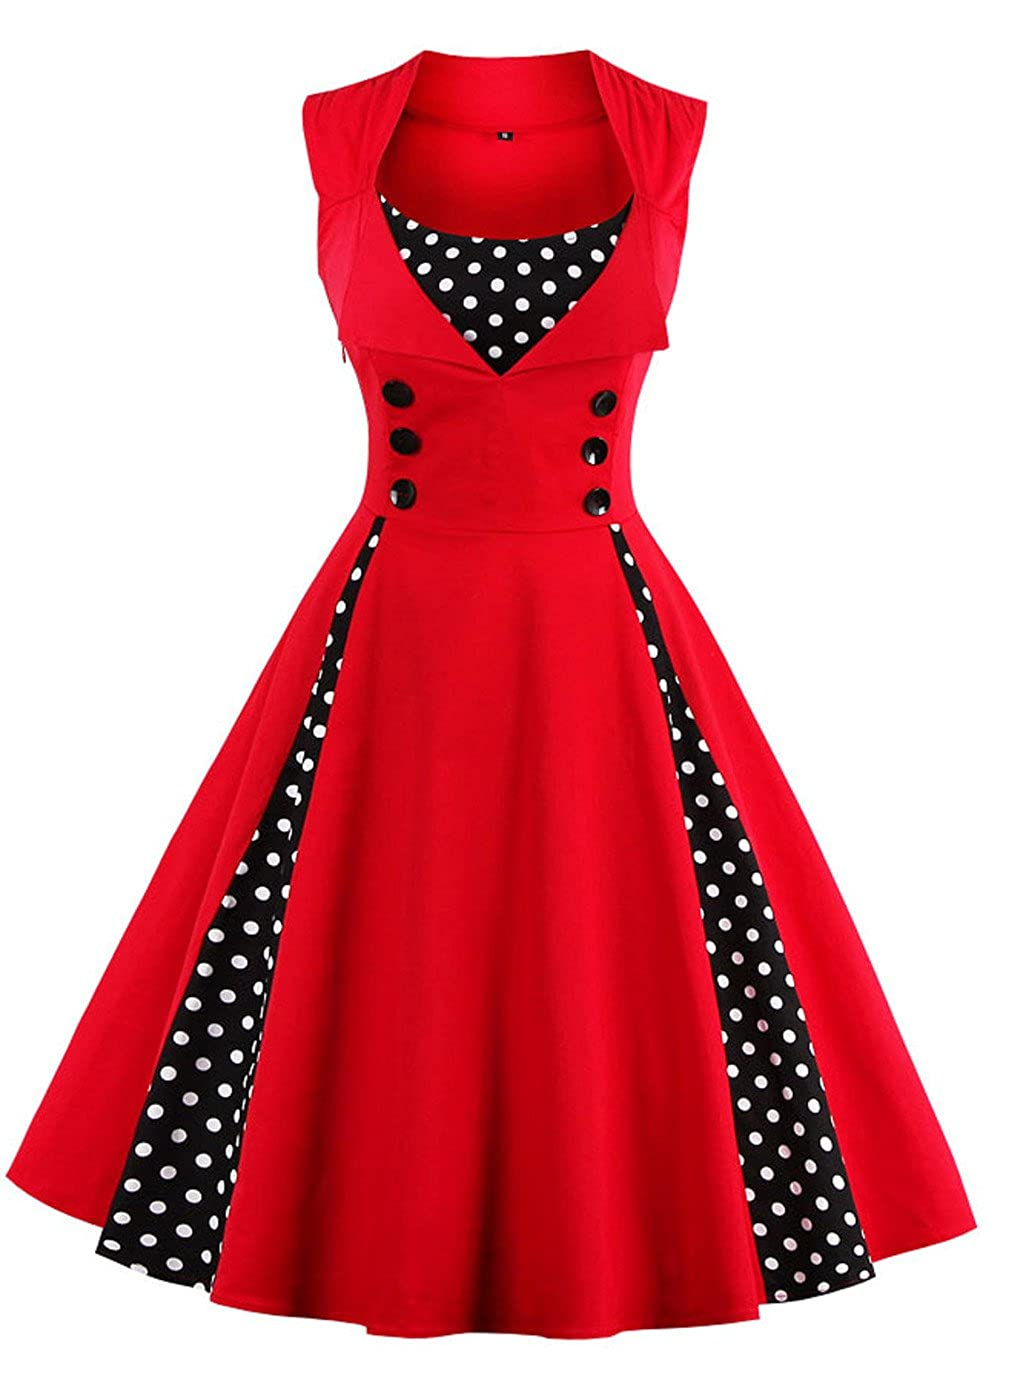 TALLA 3XL. VERNASSA 50s Vestidos Vintage,Mujeres 1950s Vintage A-Line Rockabilly Clásico Verano Dress for Evening Party Cocktail, Multicolor, S-Plus Size 4XL 1357-rojo 3XL